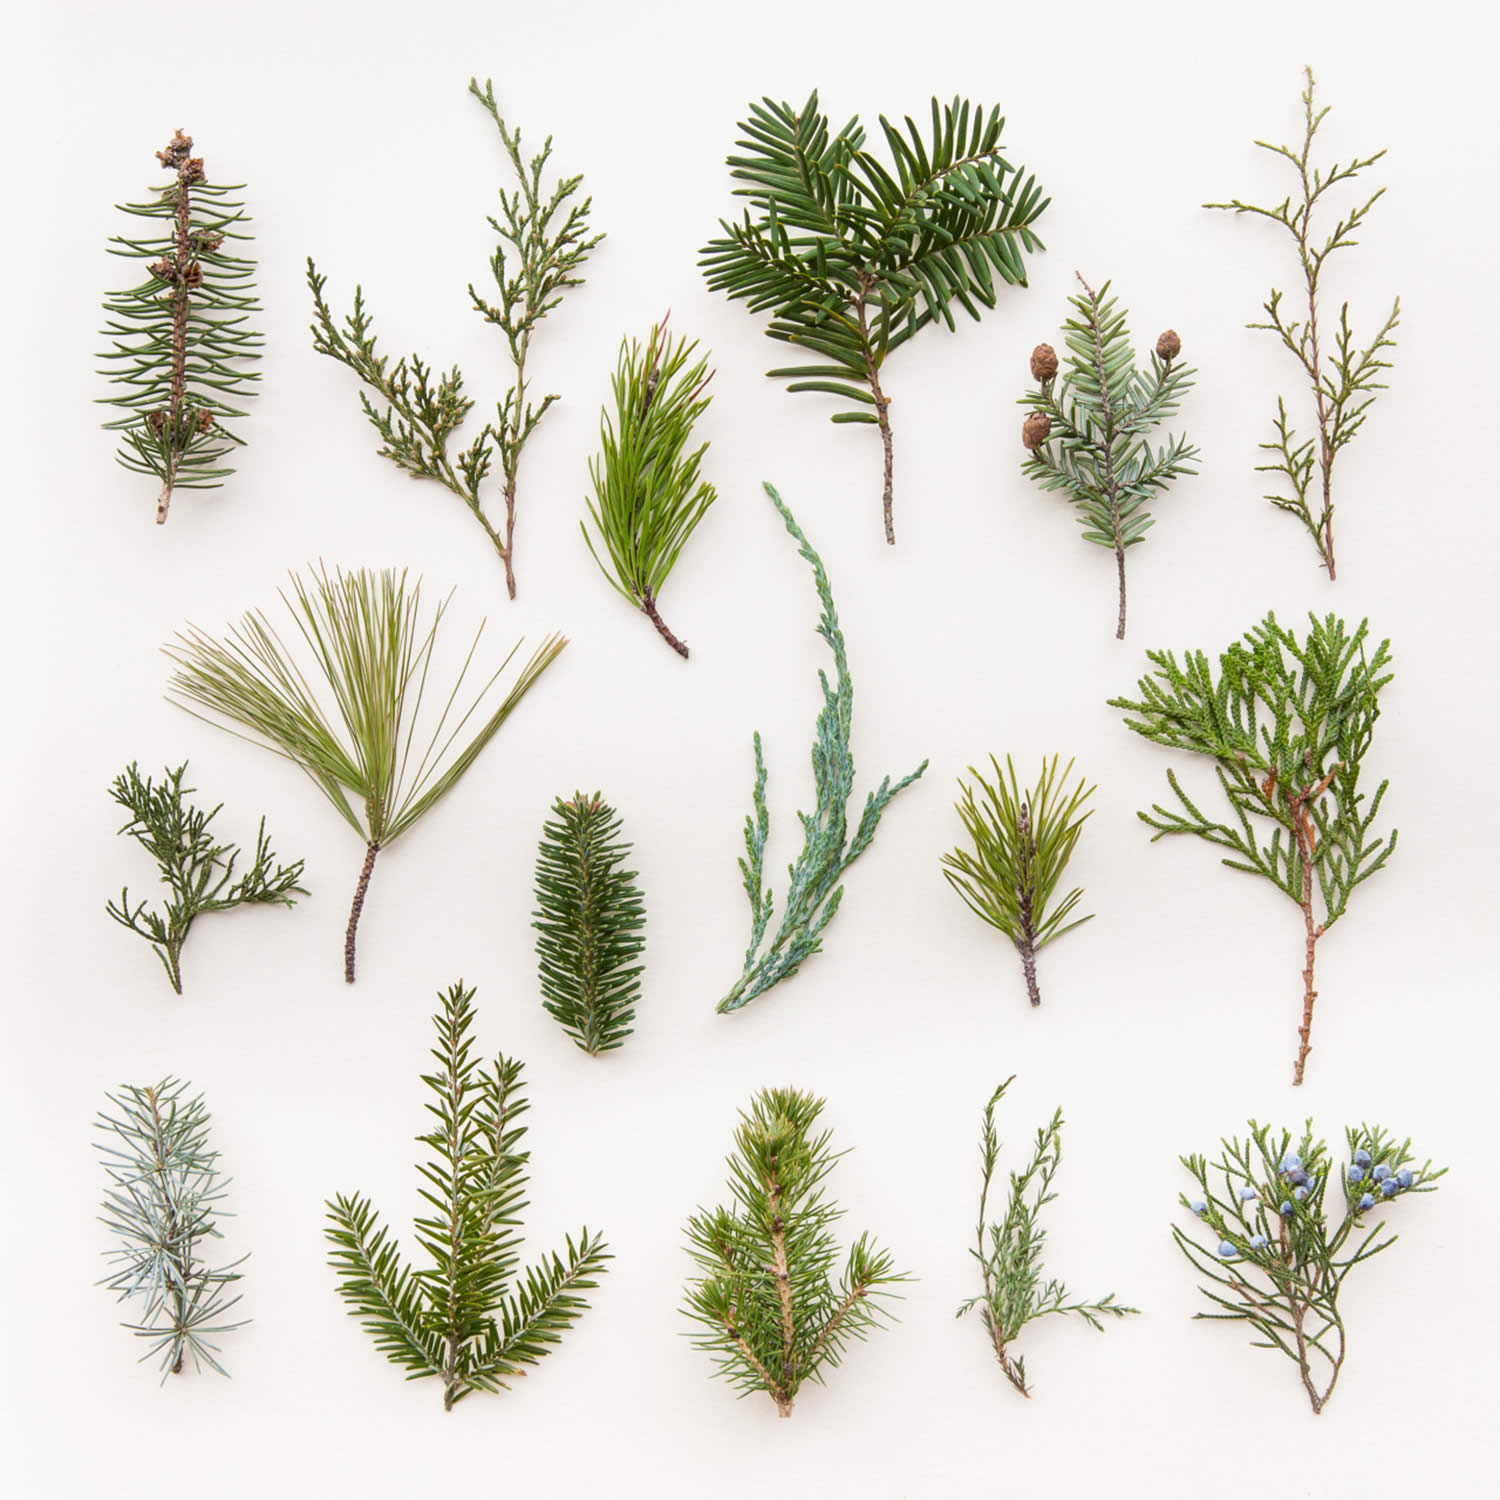 bits of pine leaves, photography